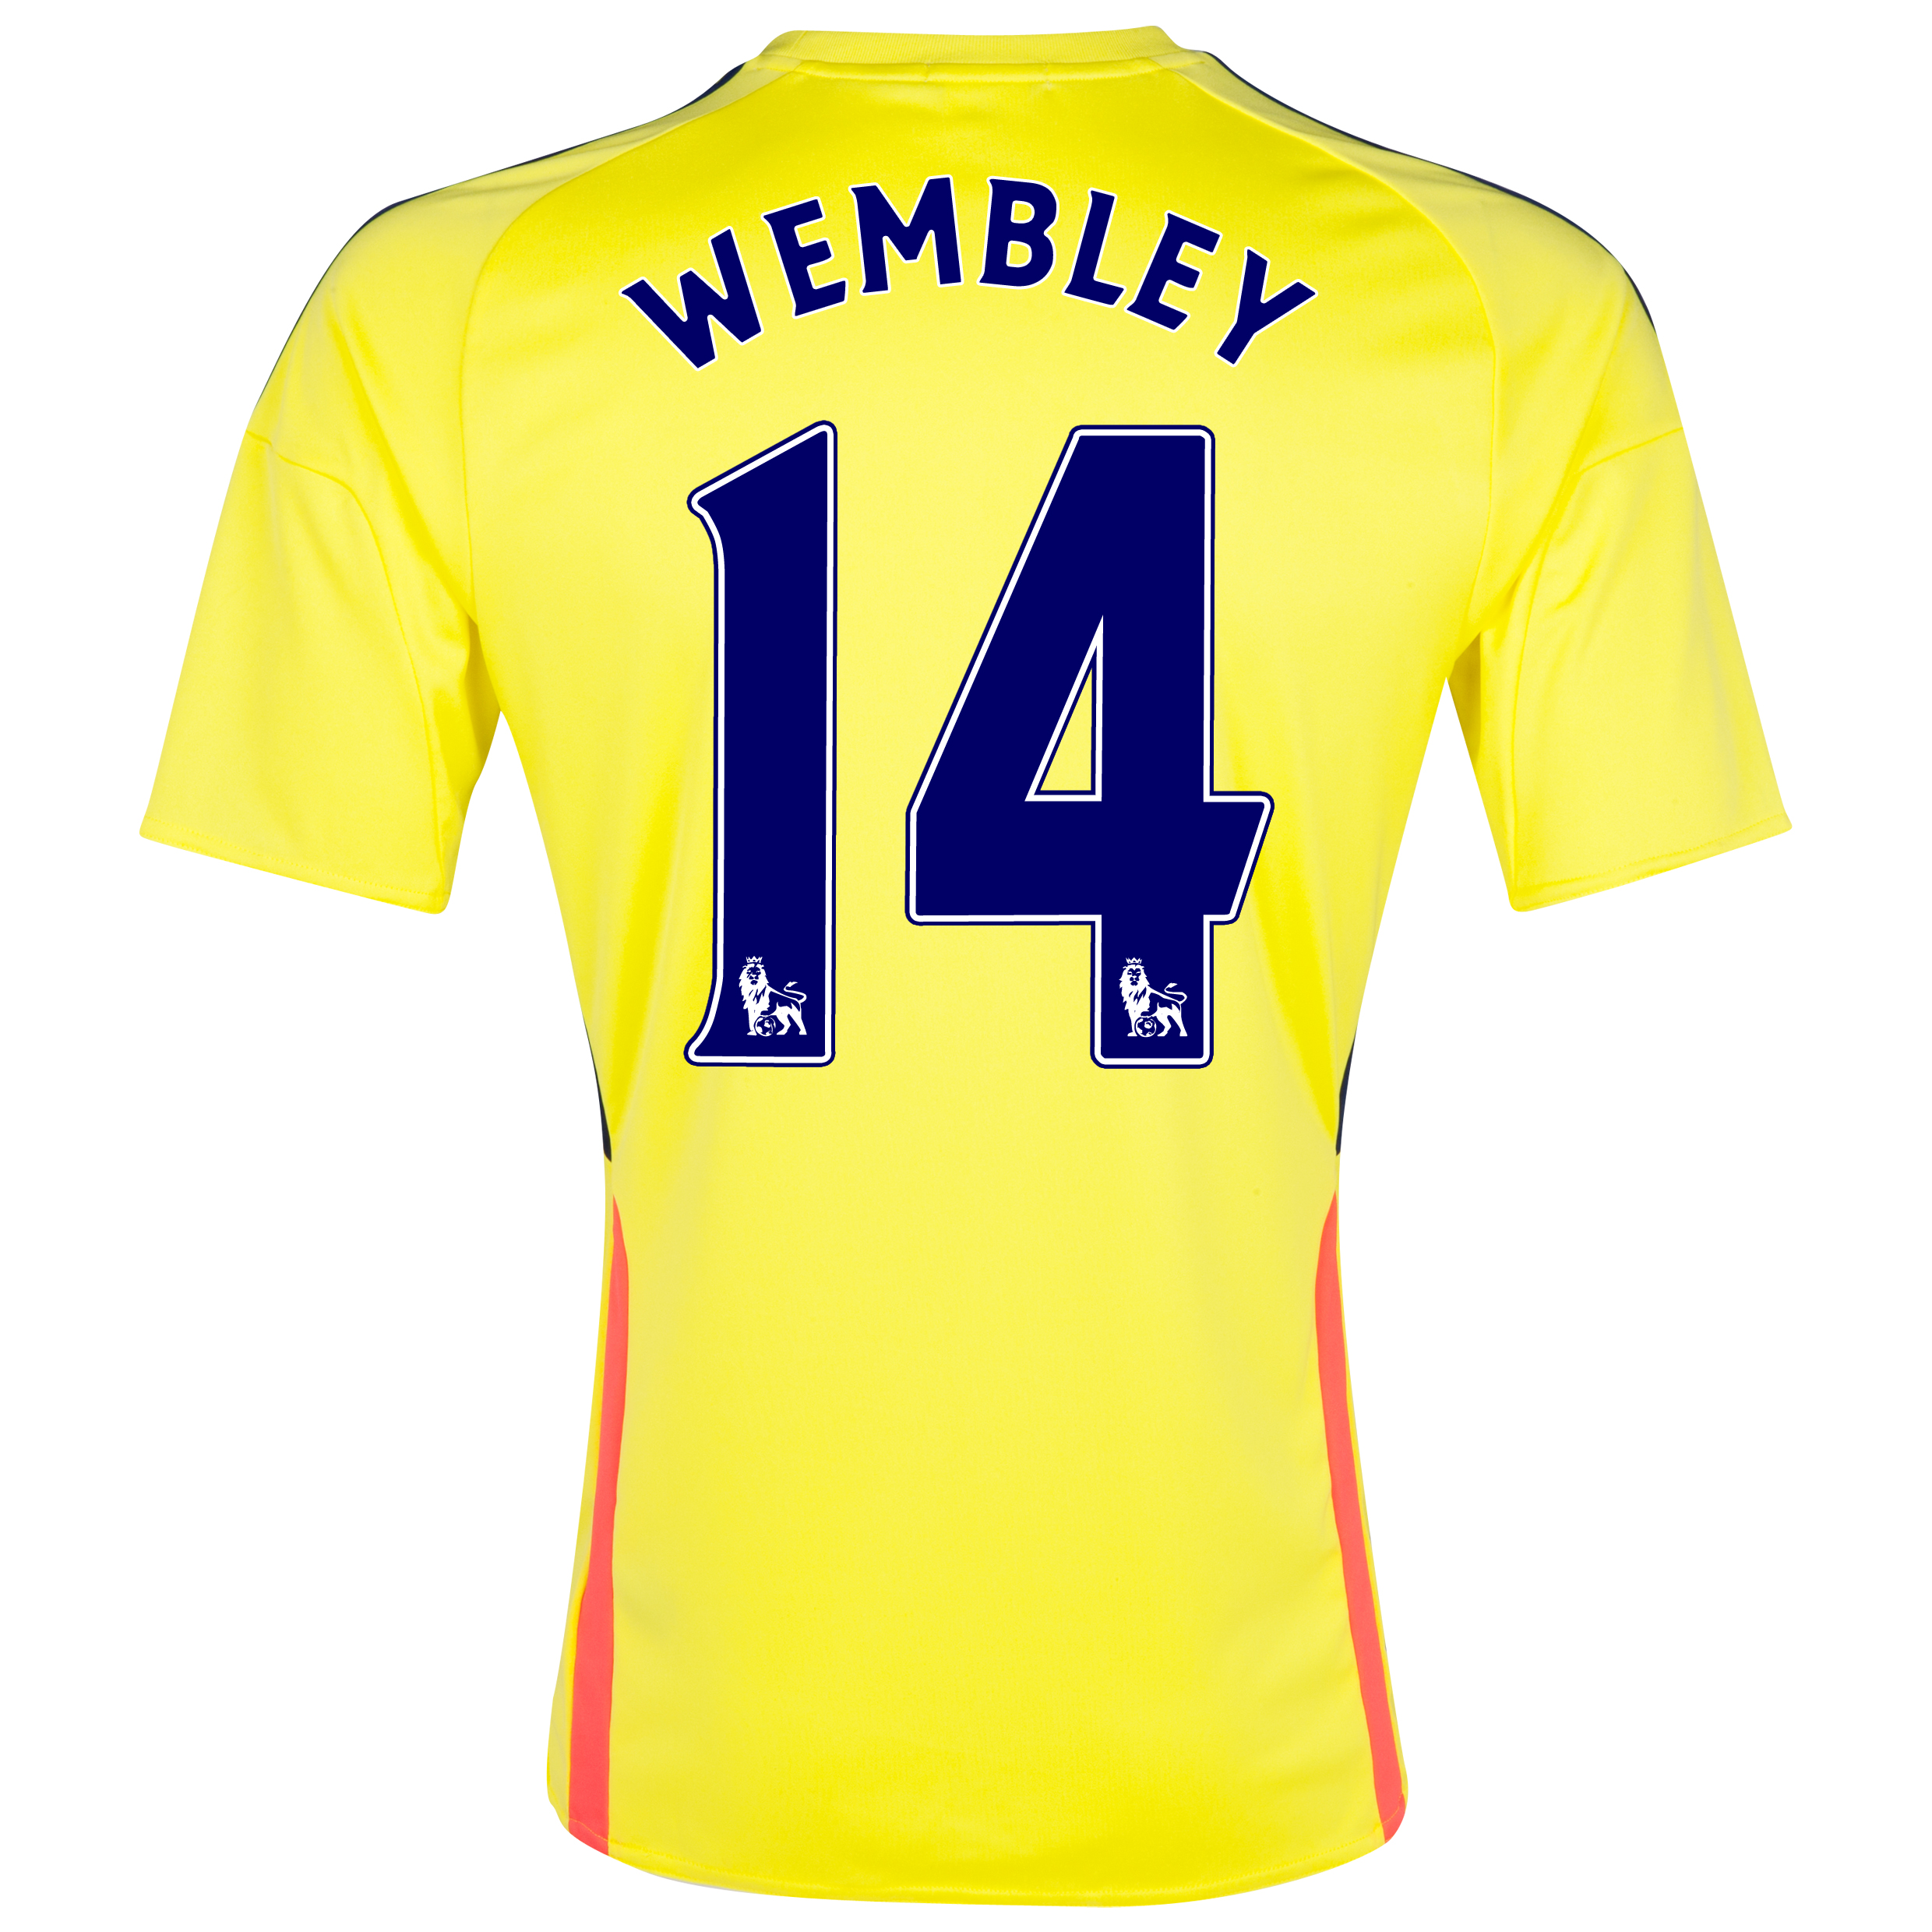 Sunderland Away Shirt 2013/14 with Wembley 14 printing